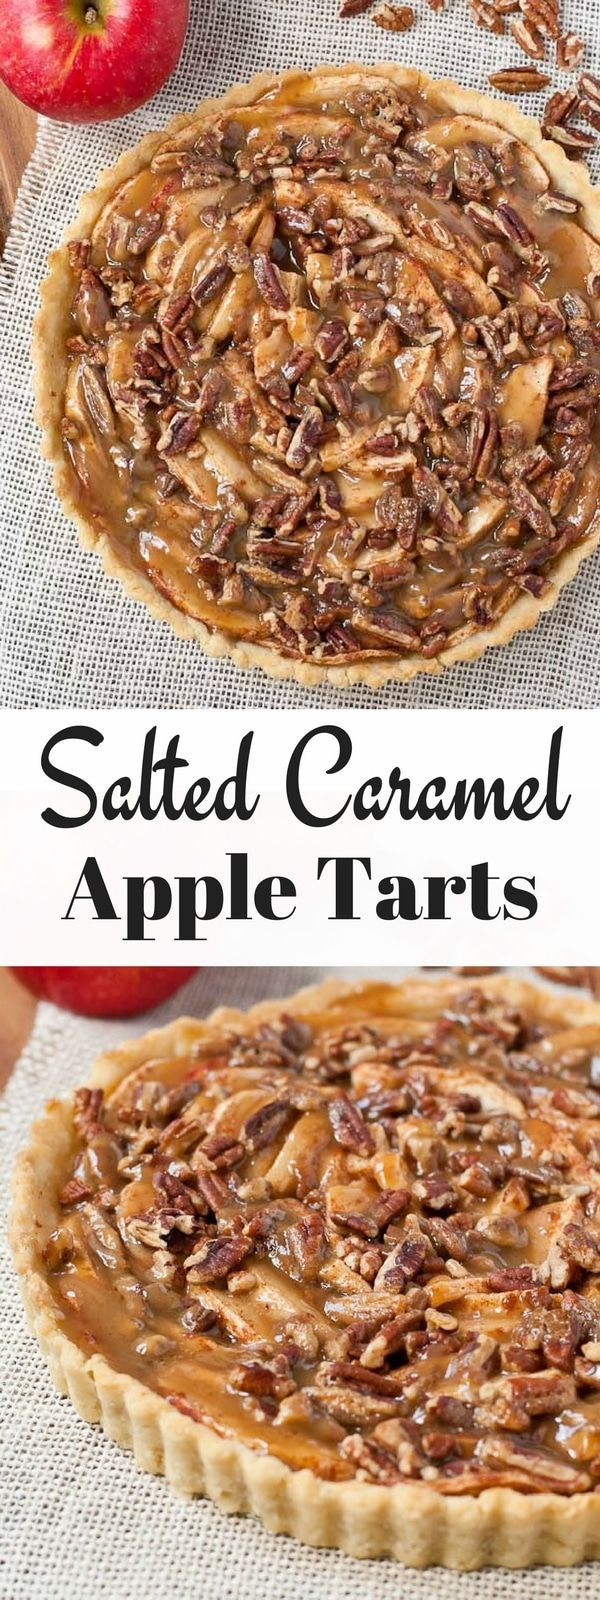 This Salted Caramel Apple Tart is outrageously delicious, and with an easy homemade crust recipe, it comes together quickly!